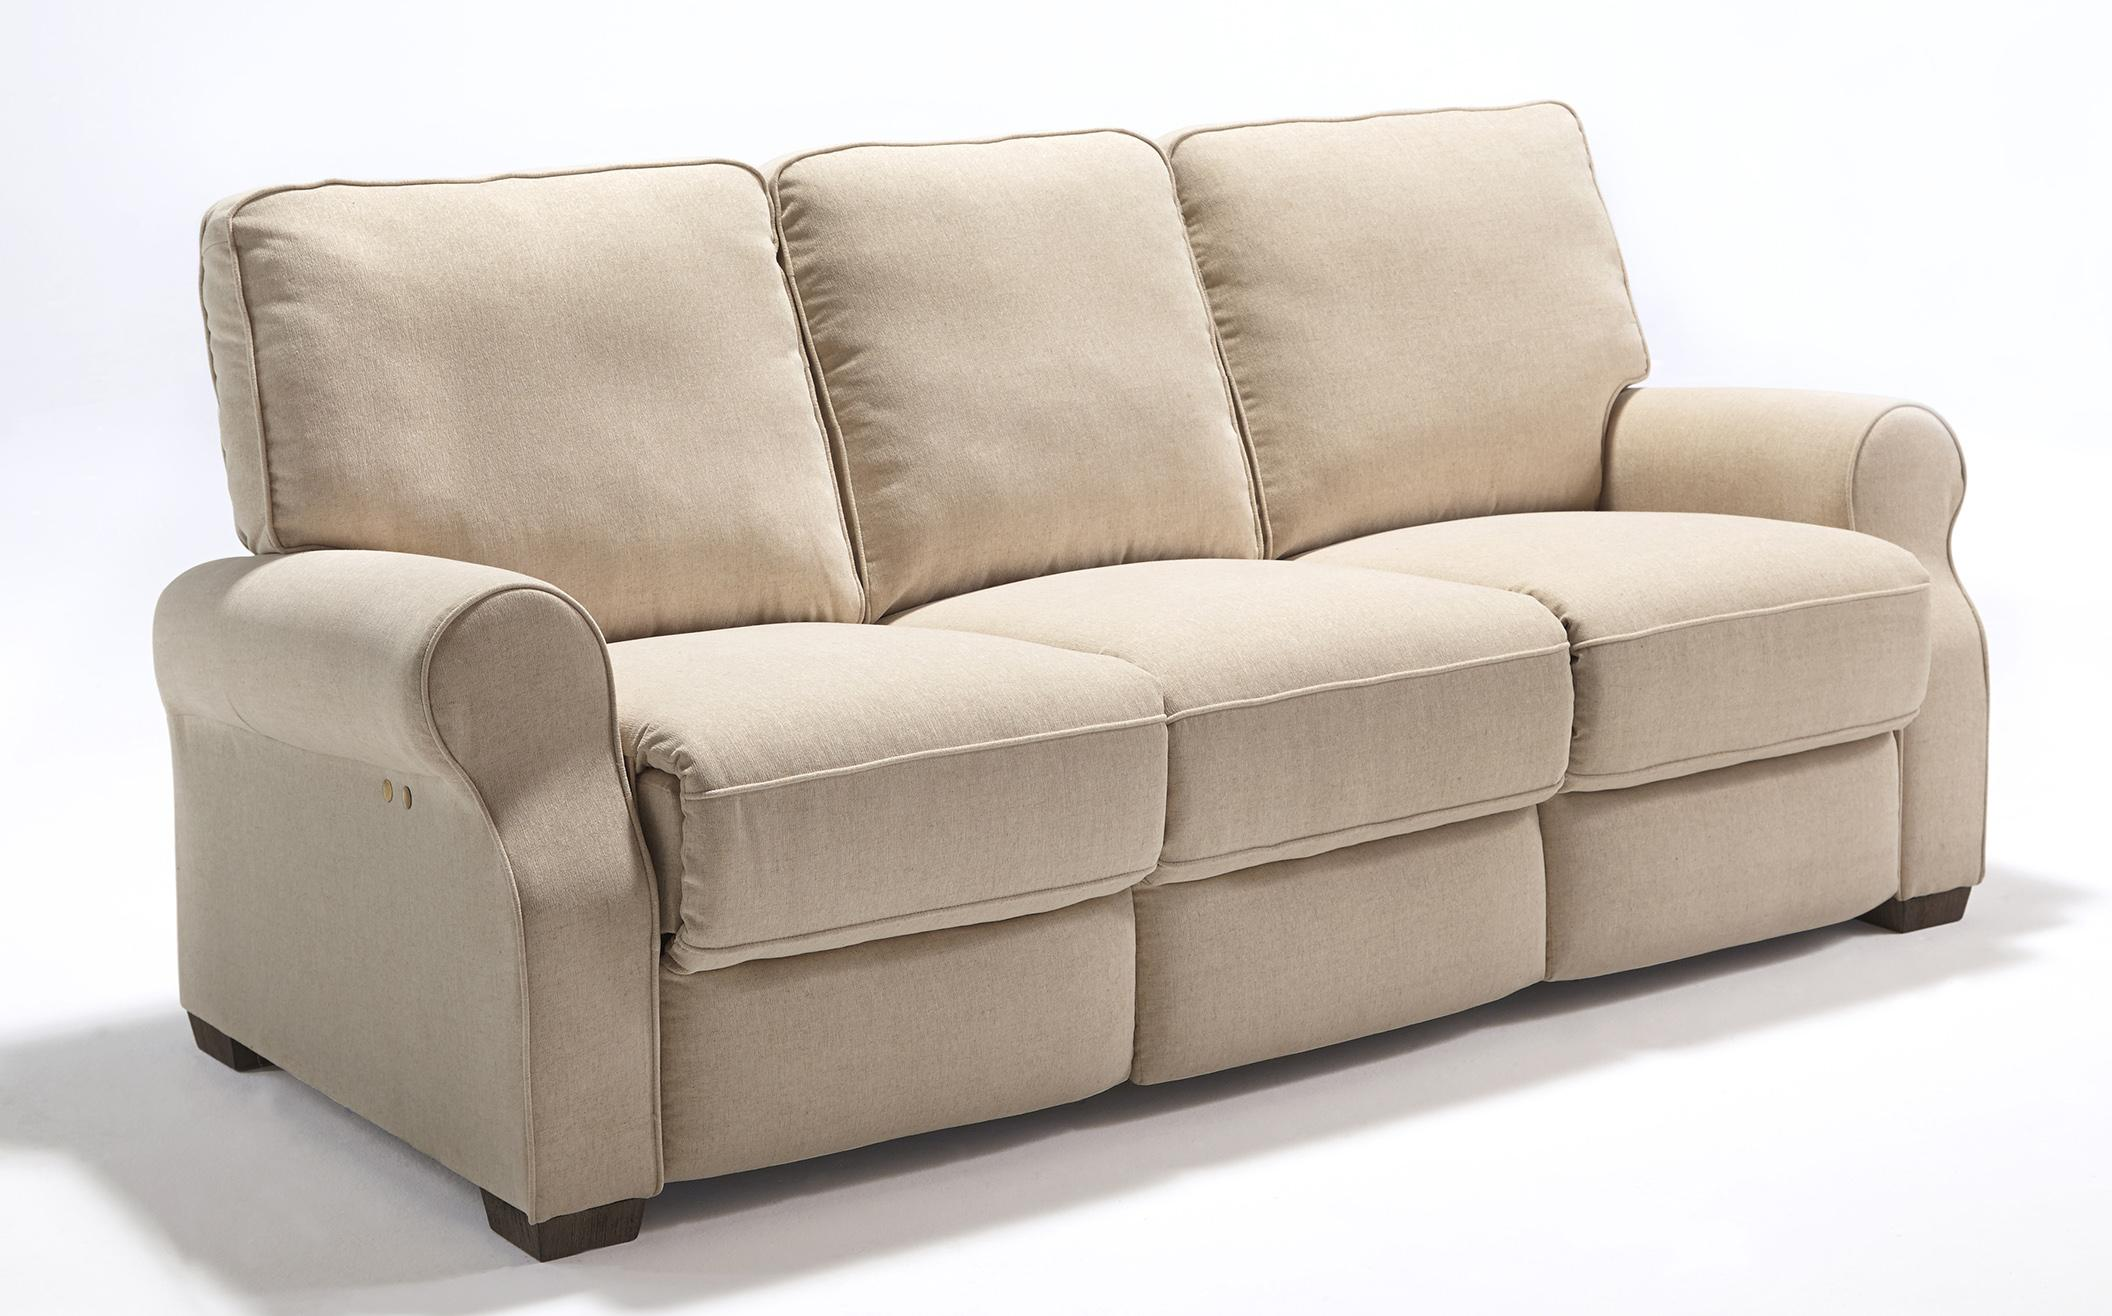 Sofas recliner baycliffe brown power reclining sofa for Traditional sofas with legs